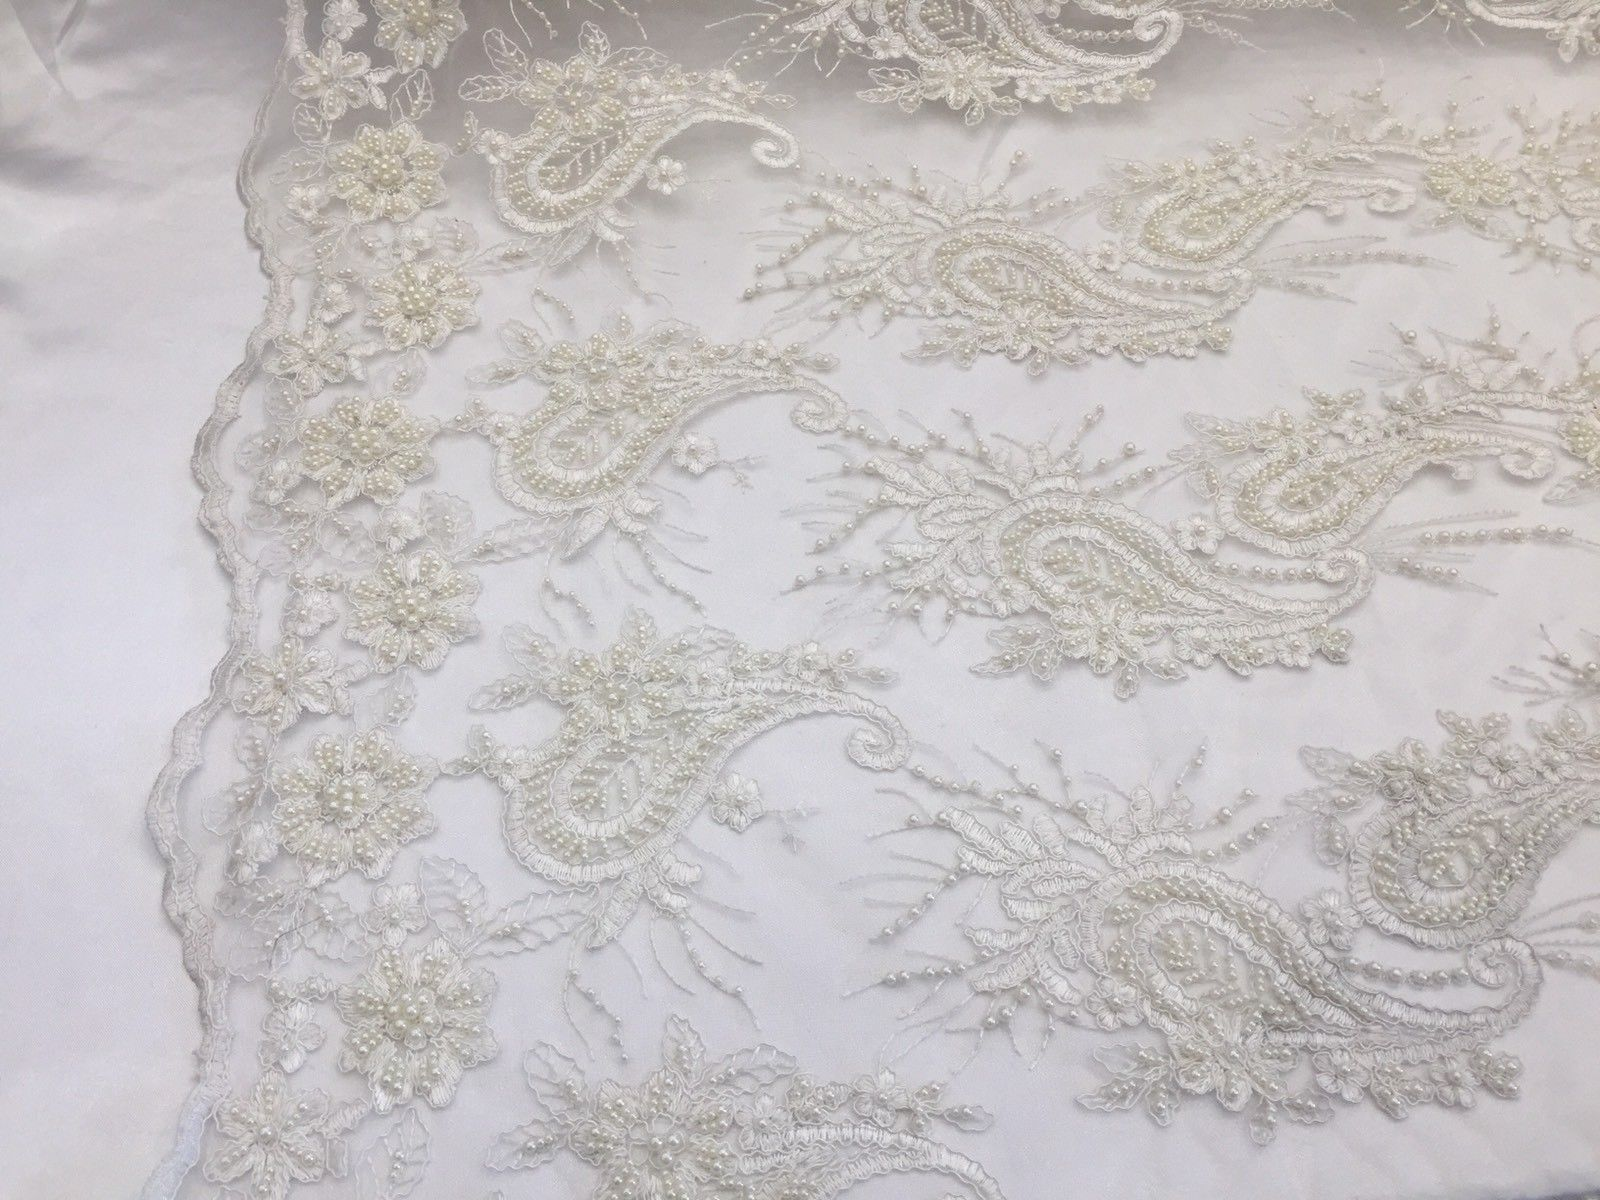 Lace fabric - Wedding Pearls Ivory Flower Mesh Dress & Birdal Veil By The Yard - KINGDOM OF FABRICS